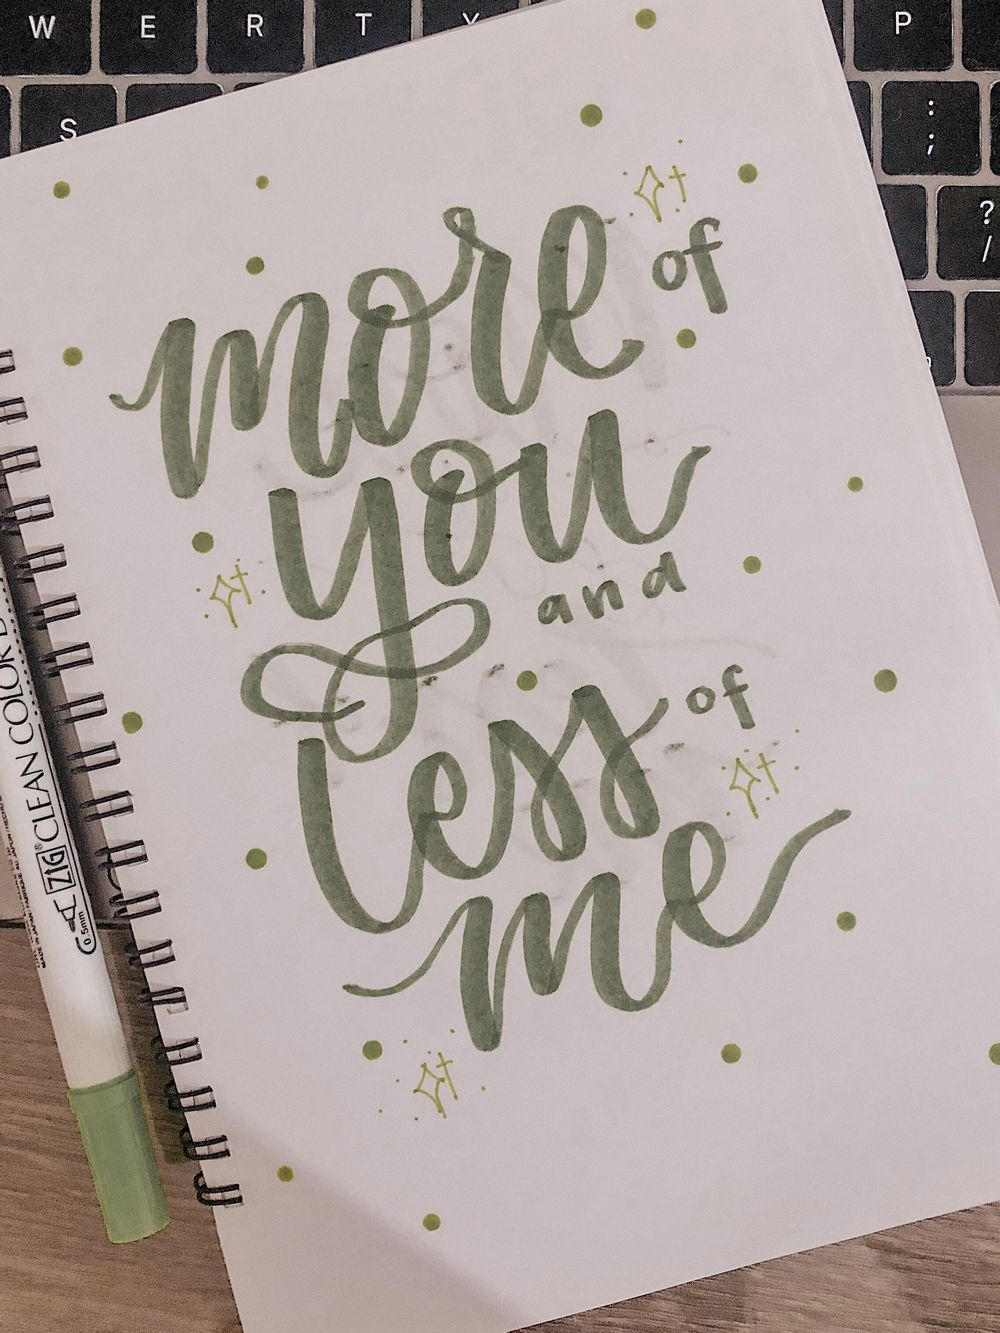 Quote Handlettering - image 1 - student project